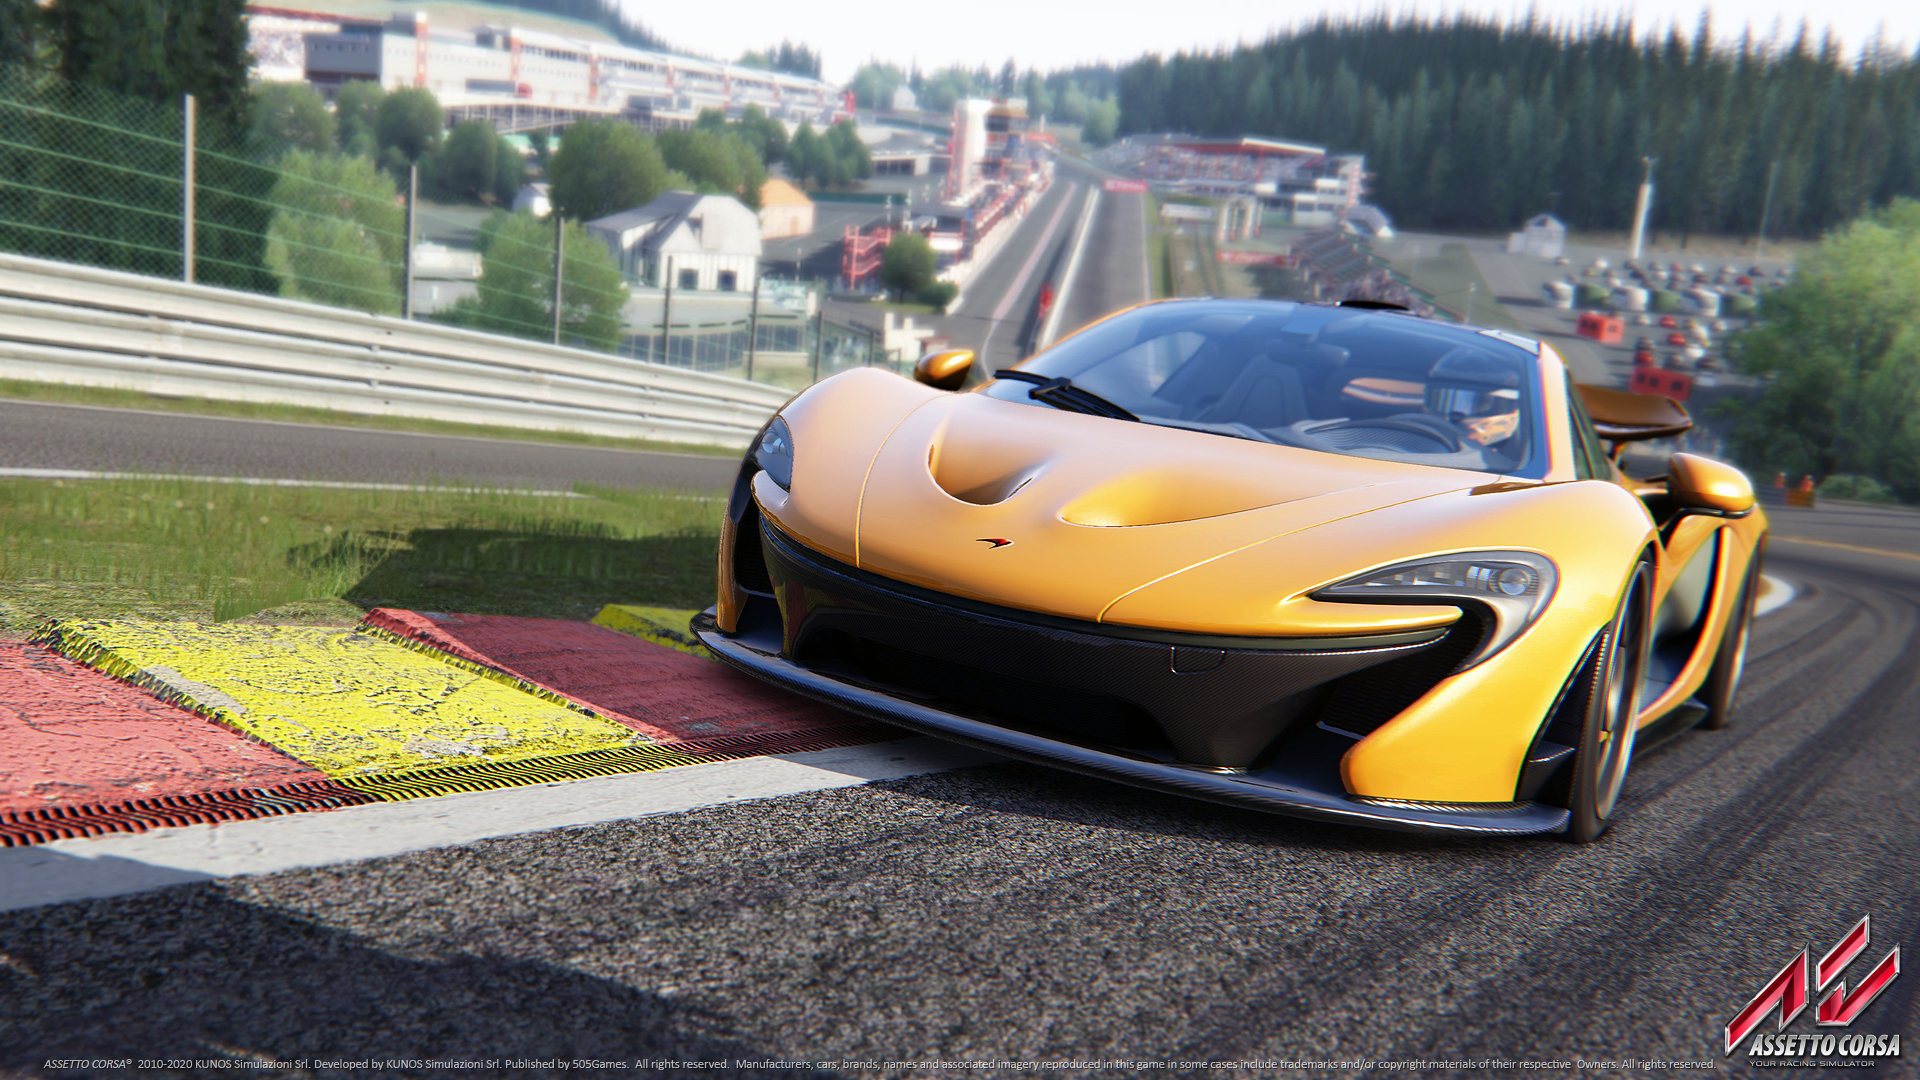 assetto-corsa-xbox-one-review-screenshot-1